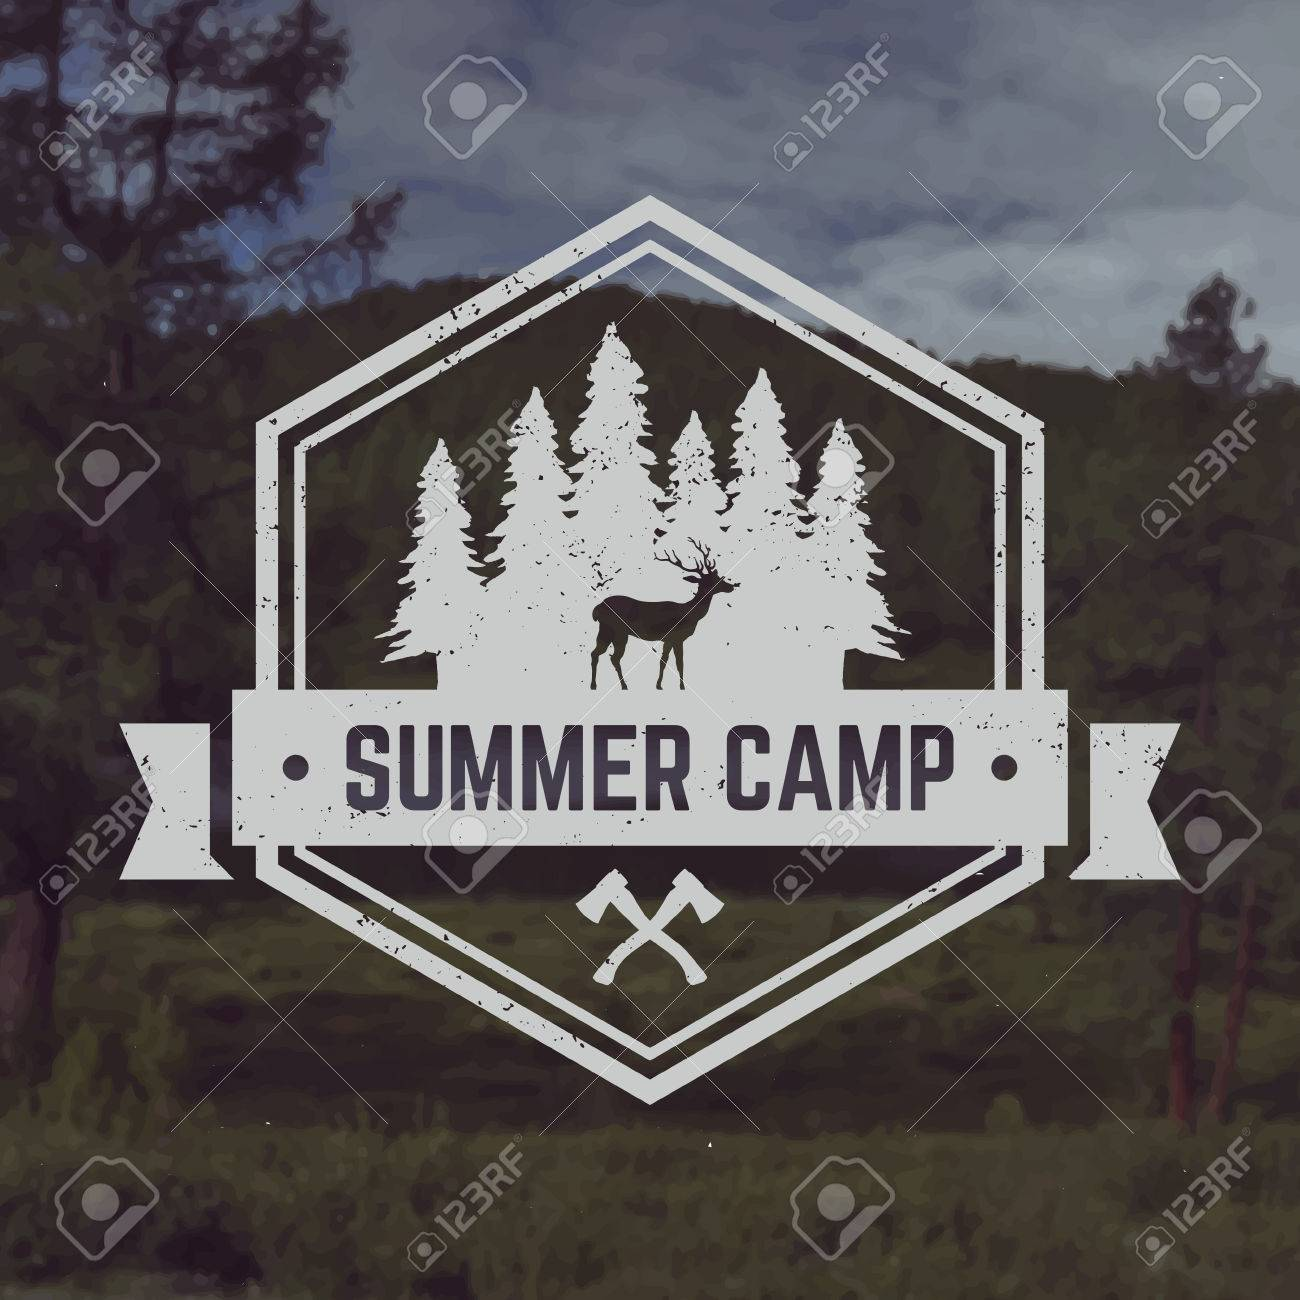 vector camping emblem. outdoor activity symbol with grunge texture on mountain landscape background - 42864192